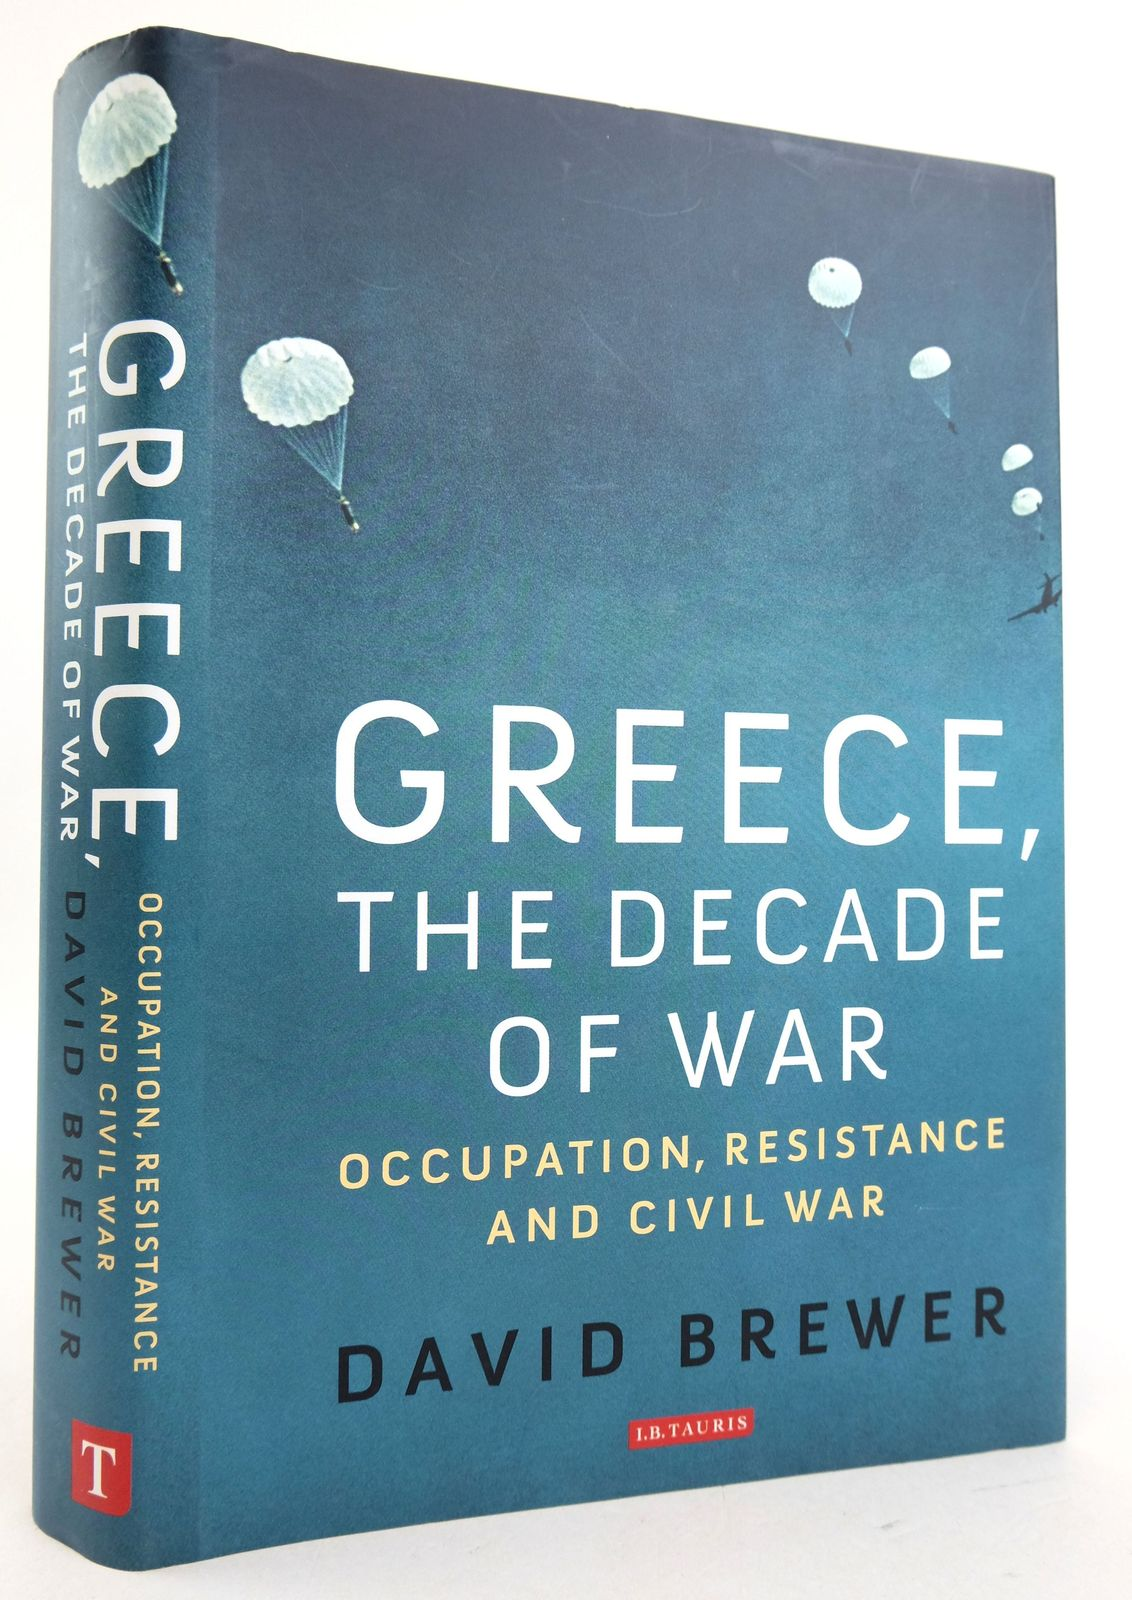 Photo of GREECE, THE DECADE OF WAR: OCCUPATION, RESISTANCE AND CIVIL WAR written by Brewer, David published by I.B. Tauris & Co. Ltd. (STOCK CODE: 1819914)  for sale by Stella & Rose's Books